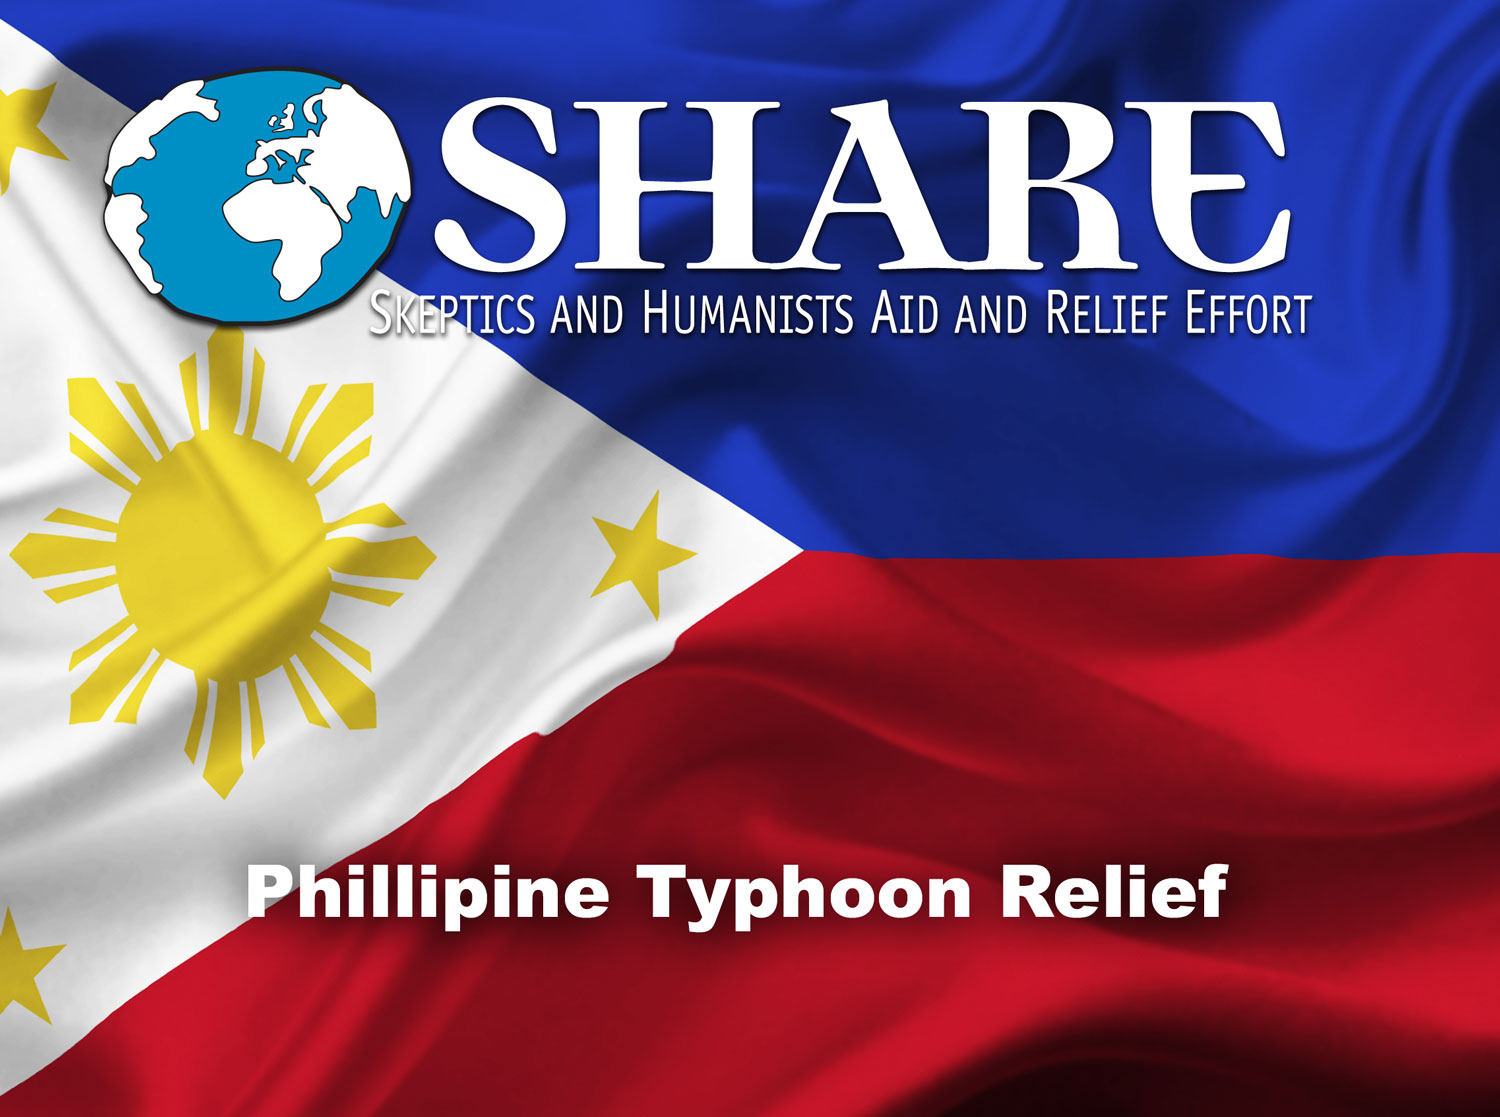 SHARE Phillipine Typhoon Relief